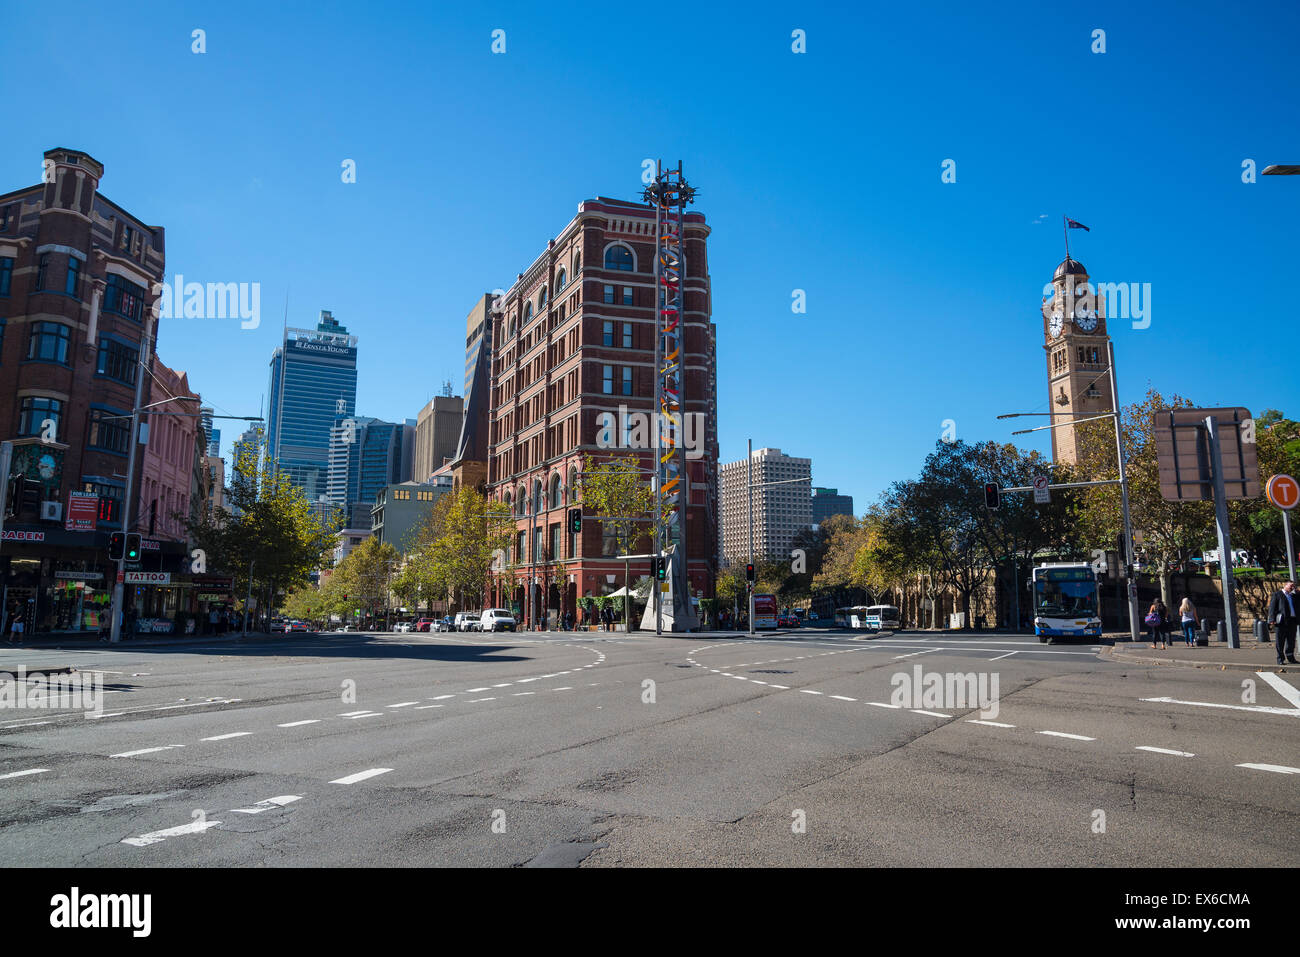 Crossroads, Central Station clock tower, Sydney, Australia - Stock Image